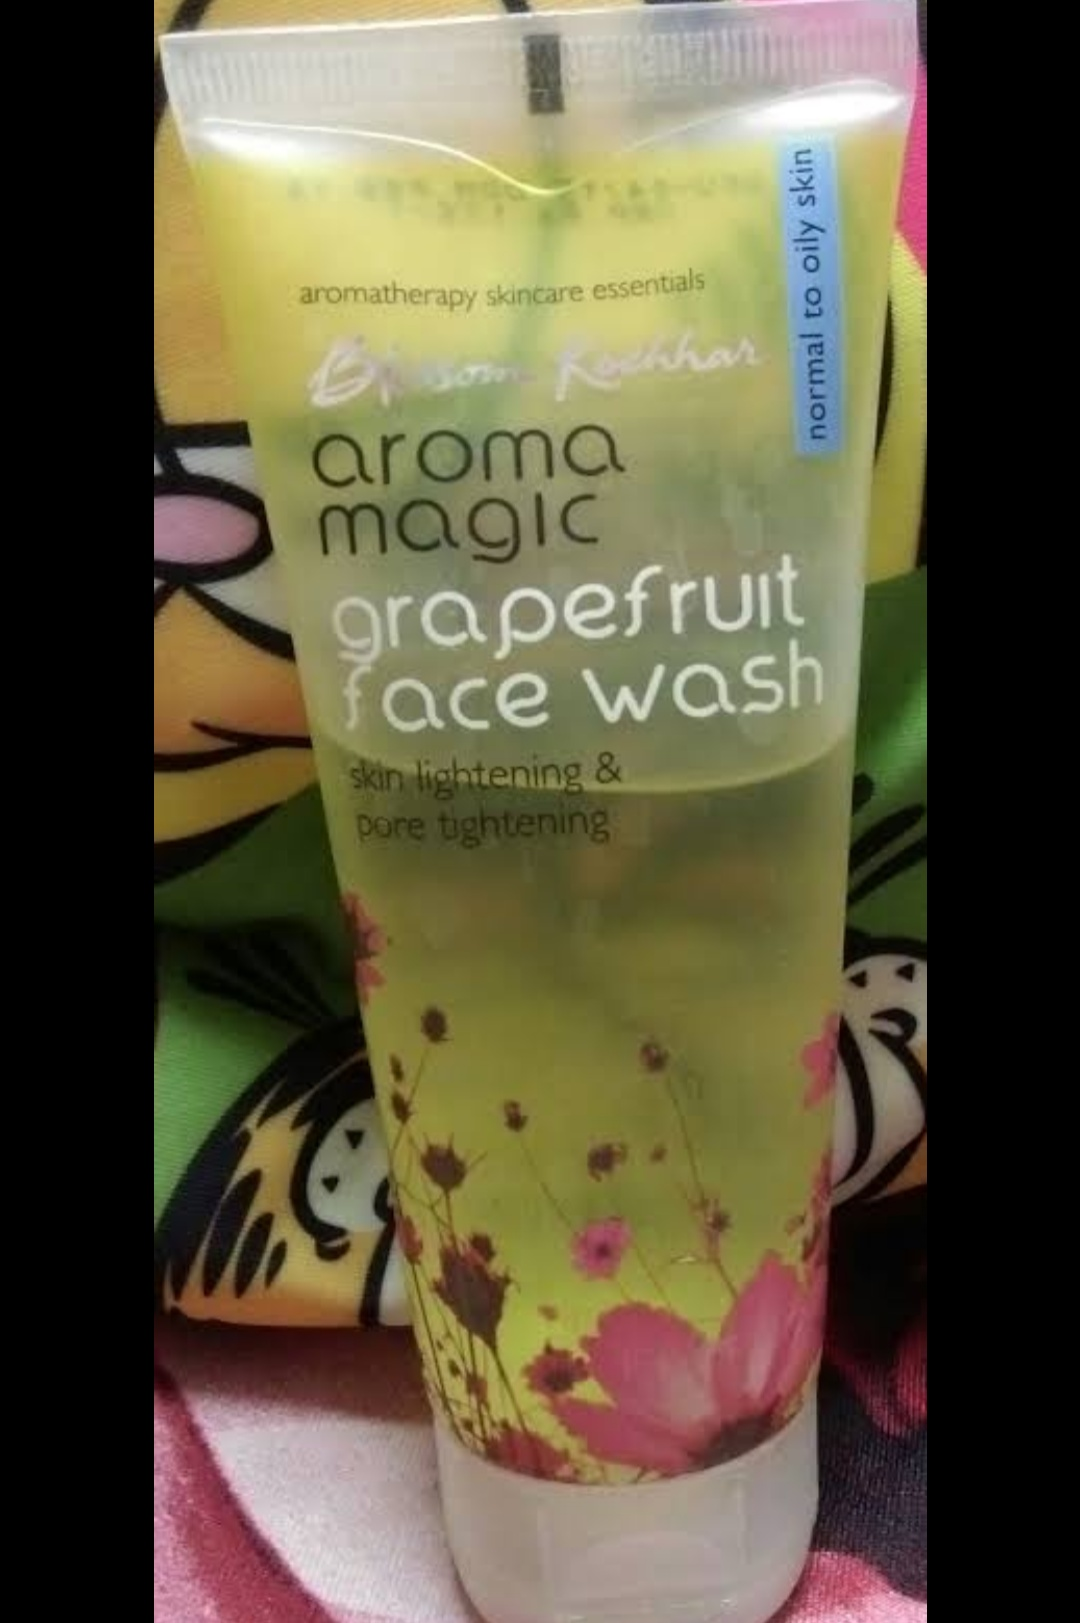 Aroma Magic Grapefruit Face Wash-Nice fruit face wash-By umadevi